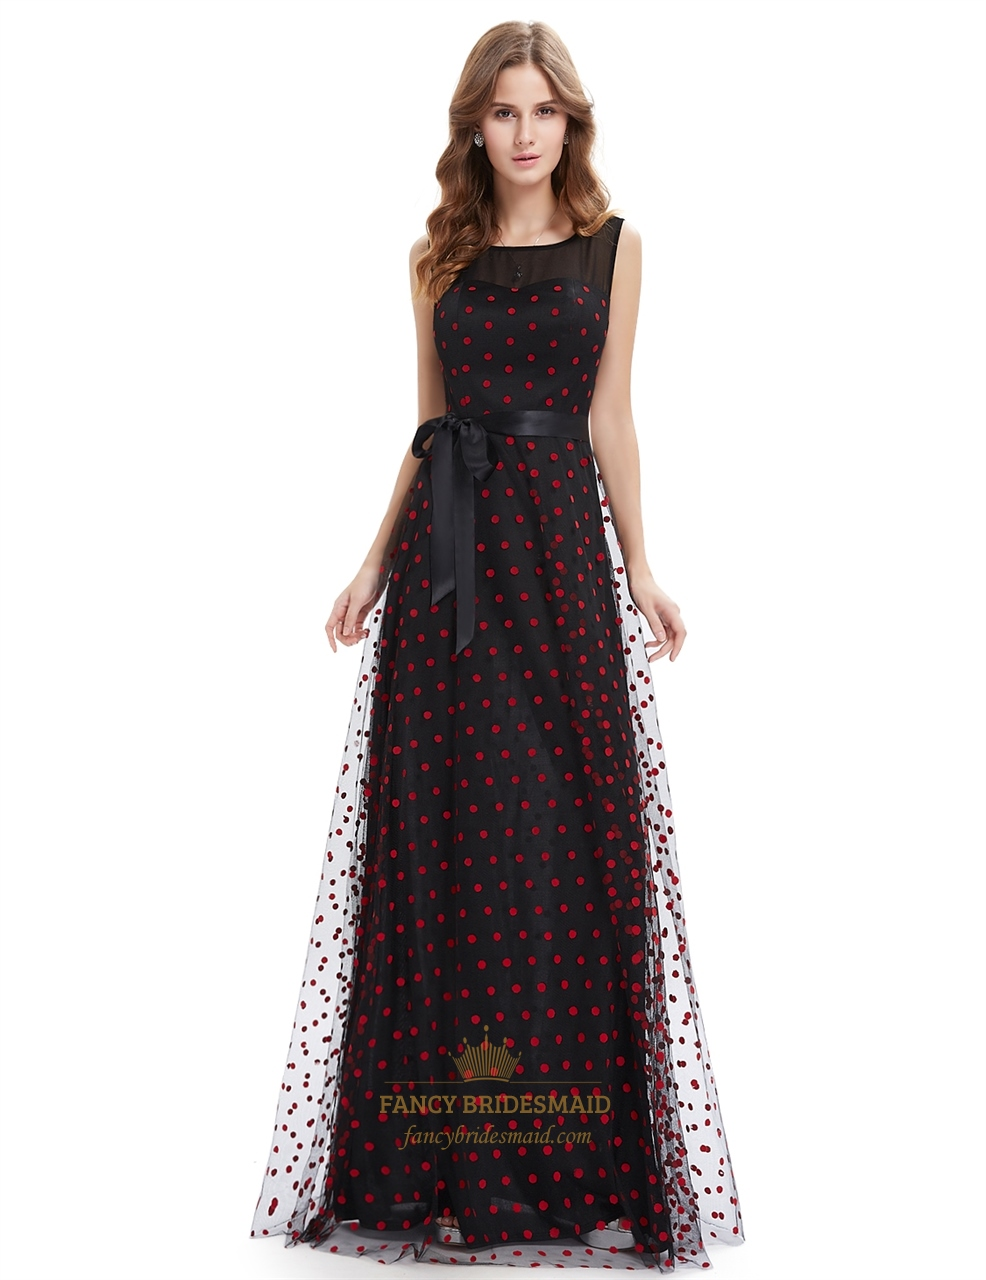 41e0787838fa Black And Red Polka Dot Sheer Illusion Neckline Maxi Dress With Sash SKU  -NW1616